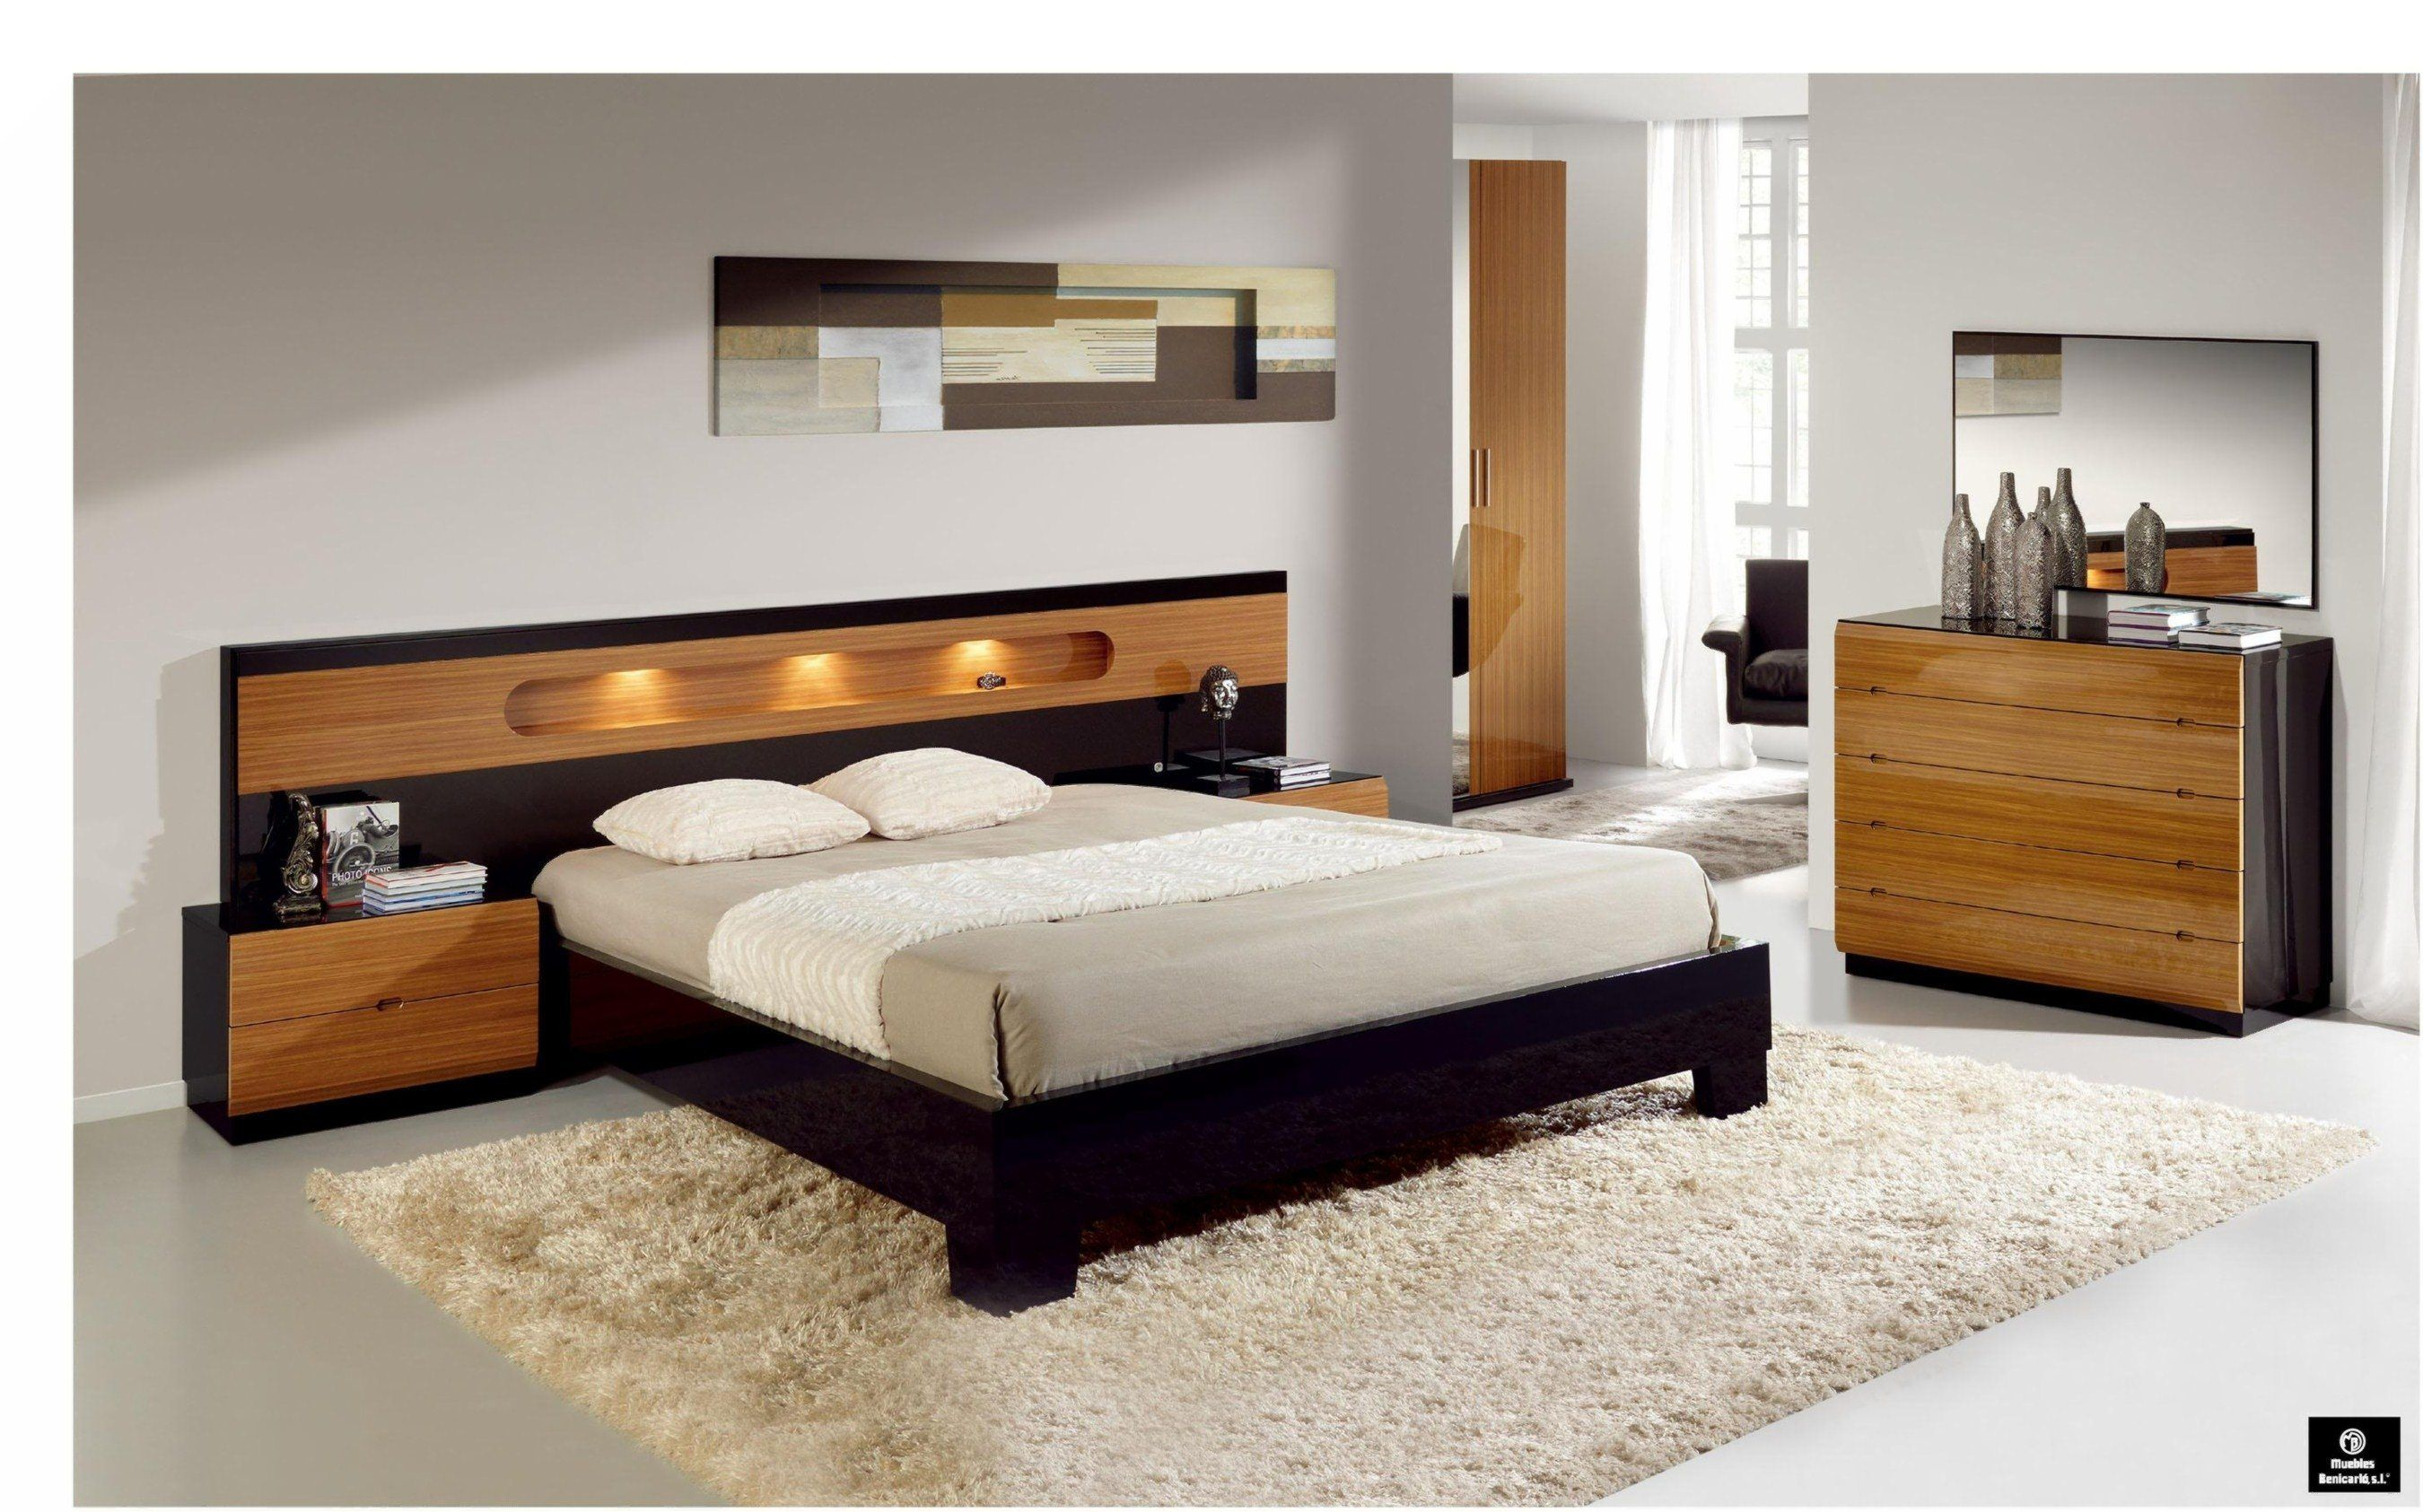 An Individualu0027s Bedroom Is A Reflection Of Oneu0027s Personality, As Well As  Social Class,